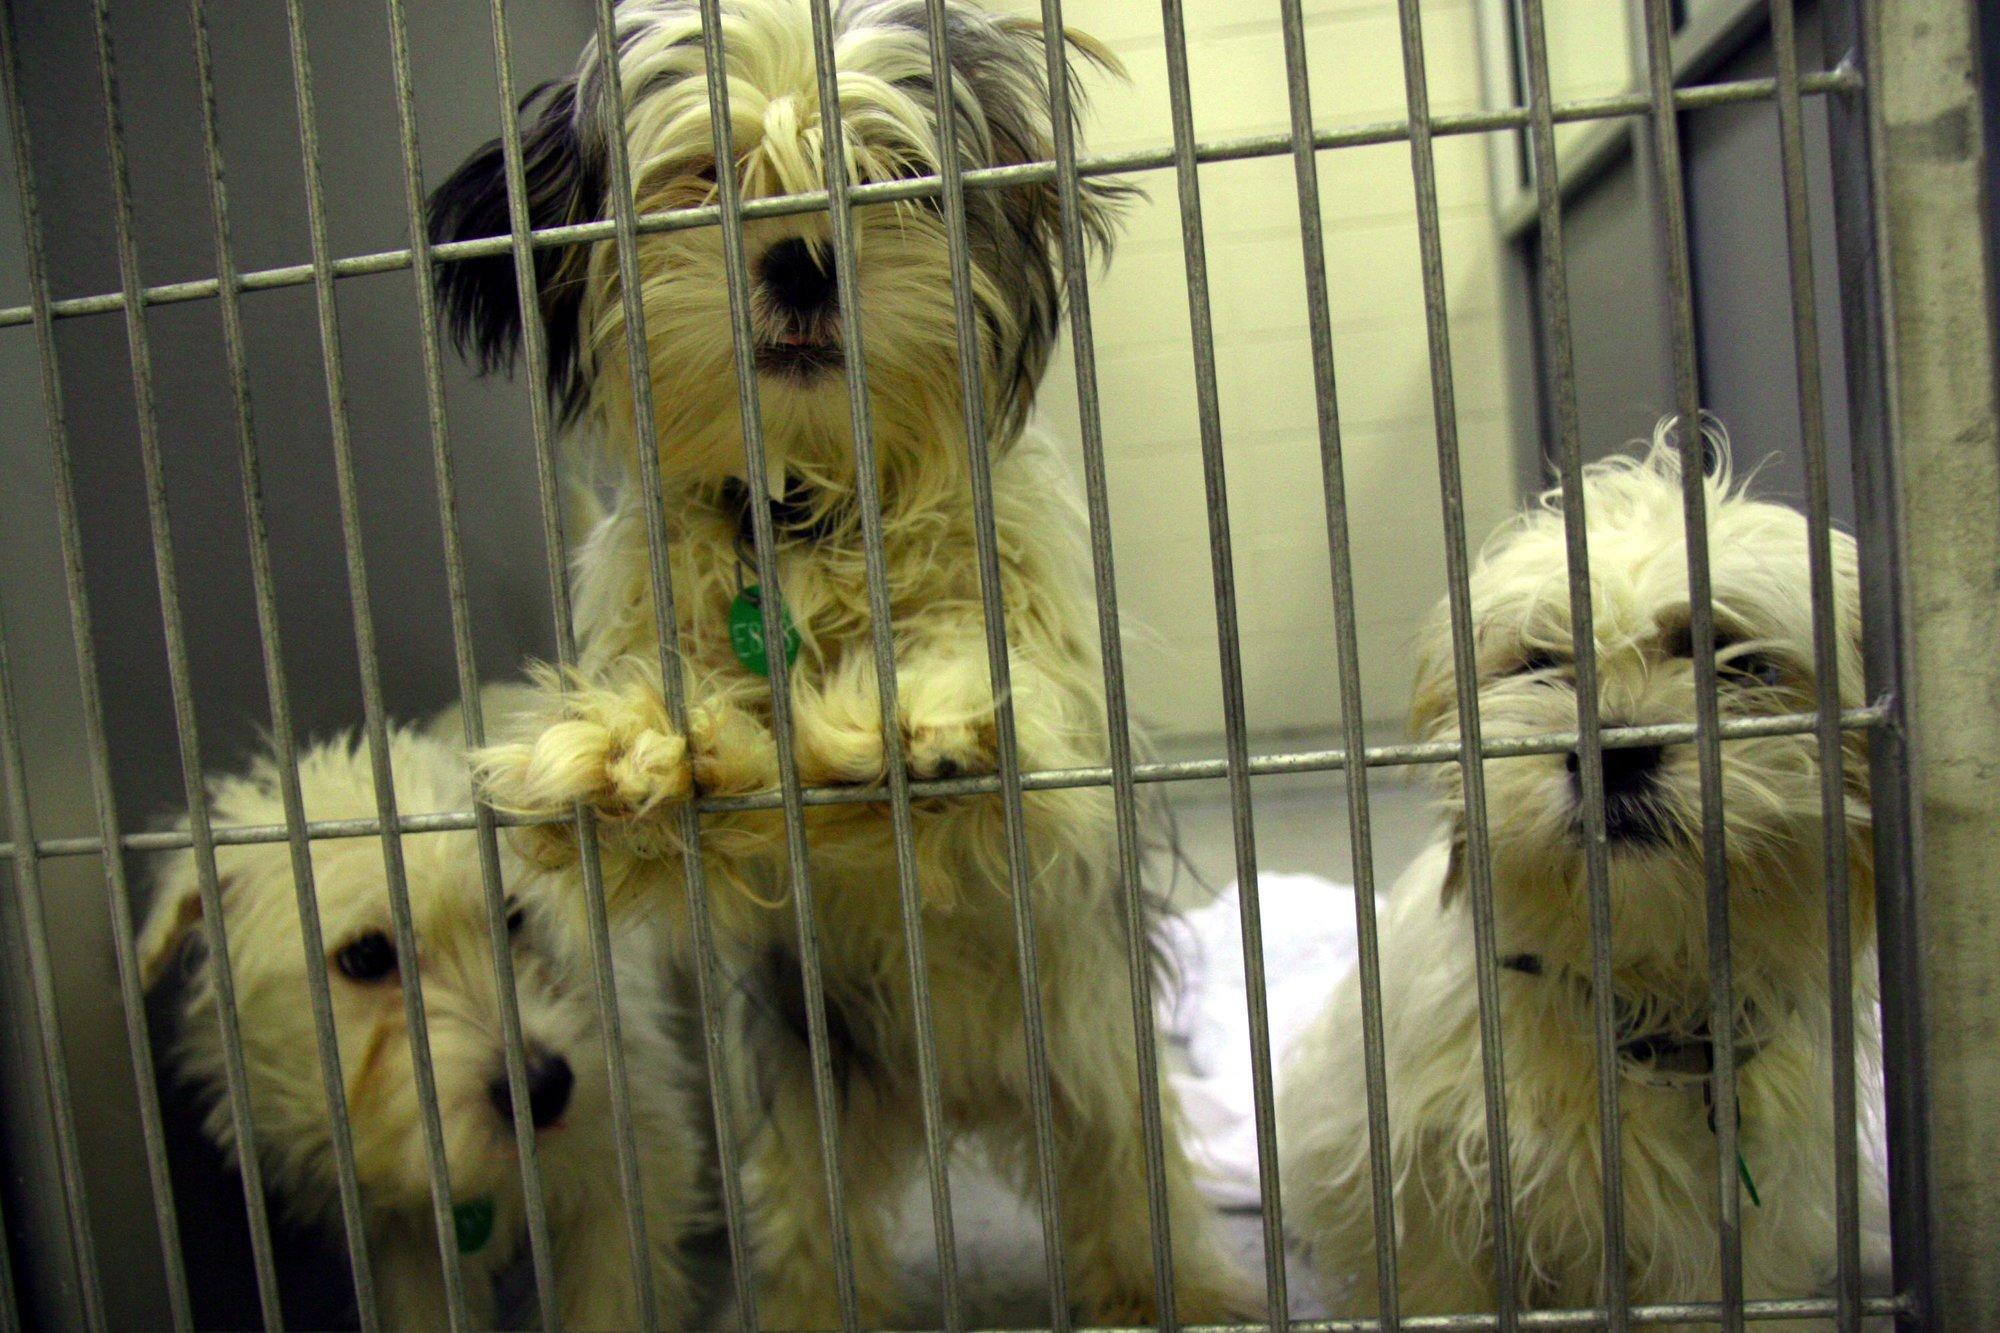 Sunrise has a new law aimed at protecting consumers from buying sick puppy mill dogs.